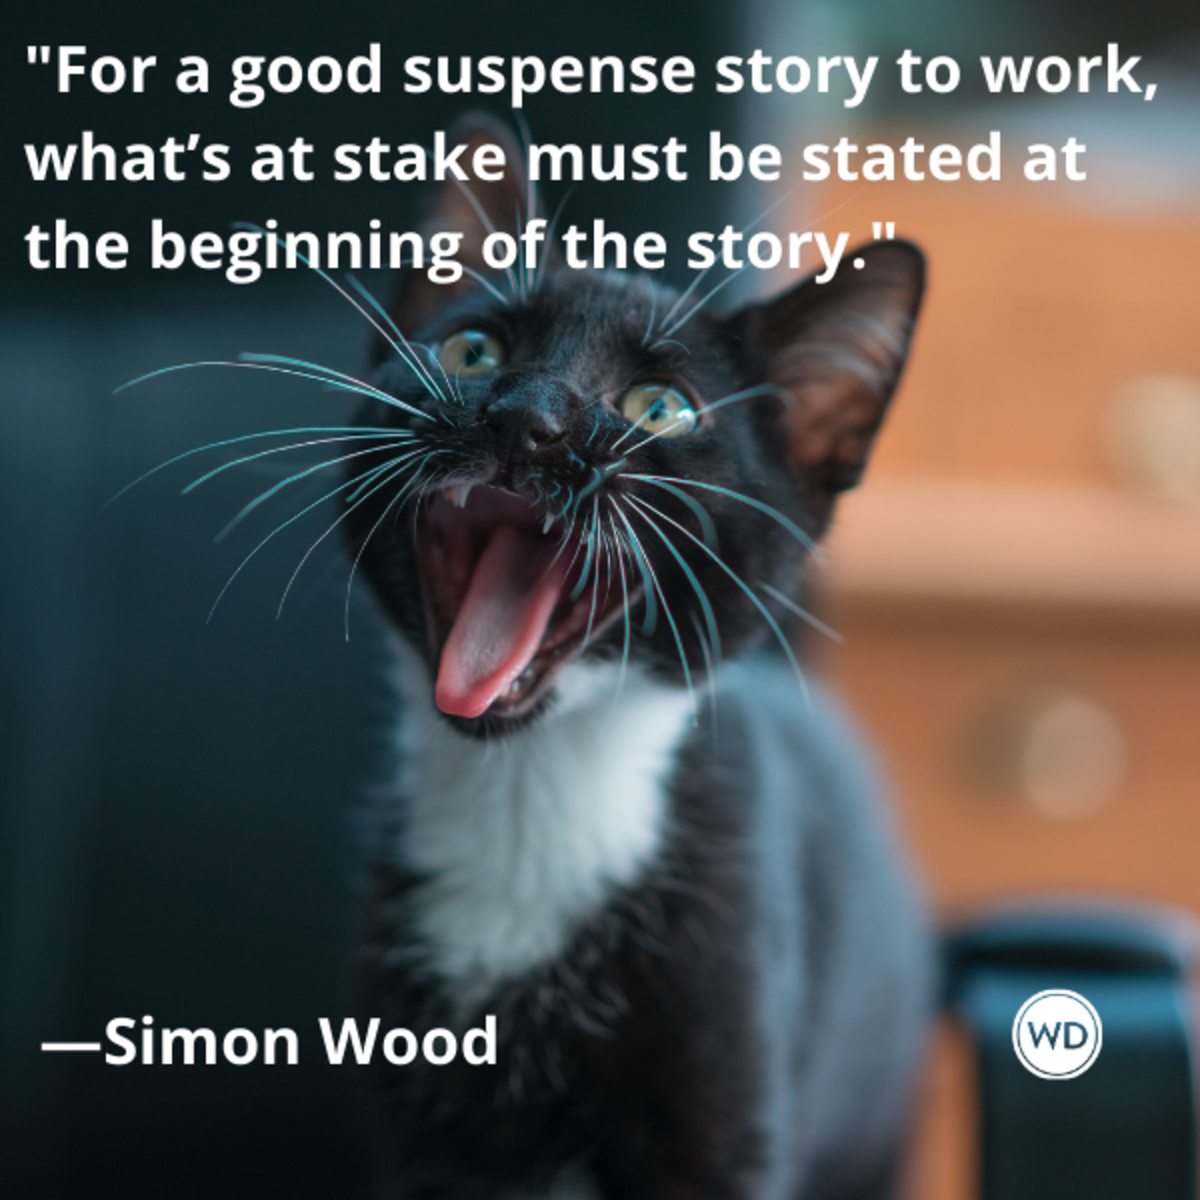 simon_wood_quotes_for_a_good_suspense_story_to_work_whats_at_stake_must_be_stated_at_the_beginning_of_the_story